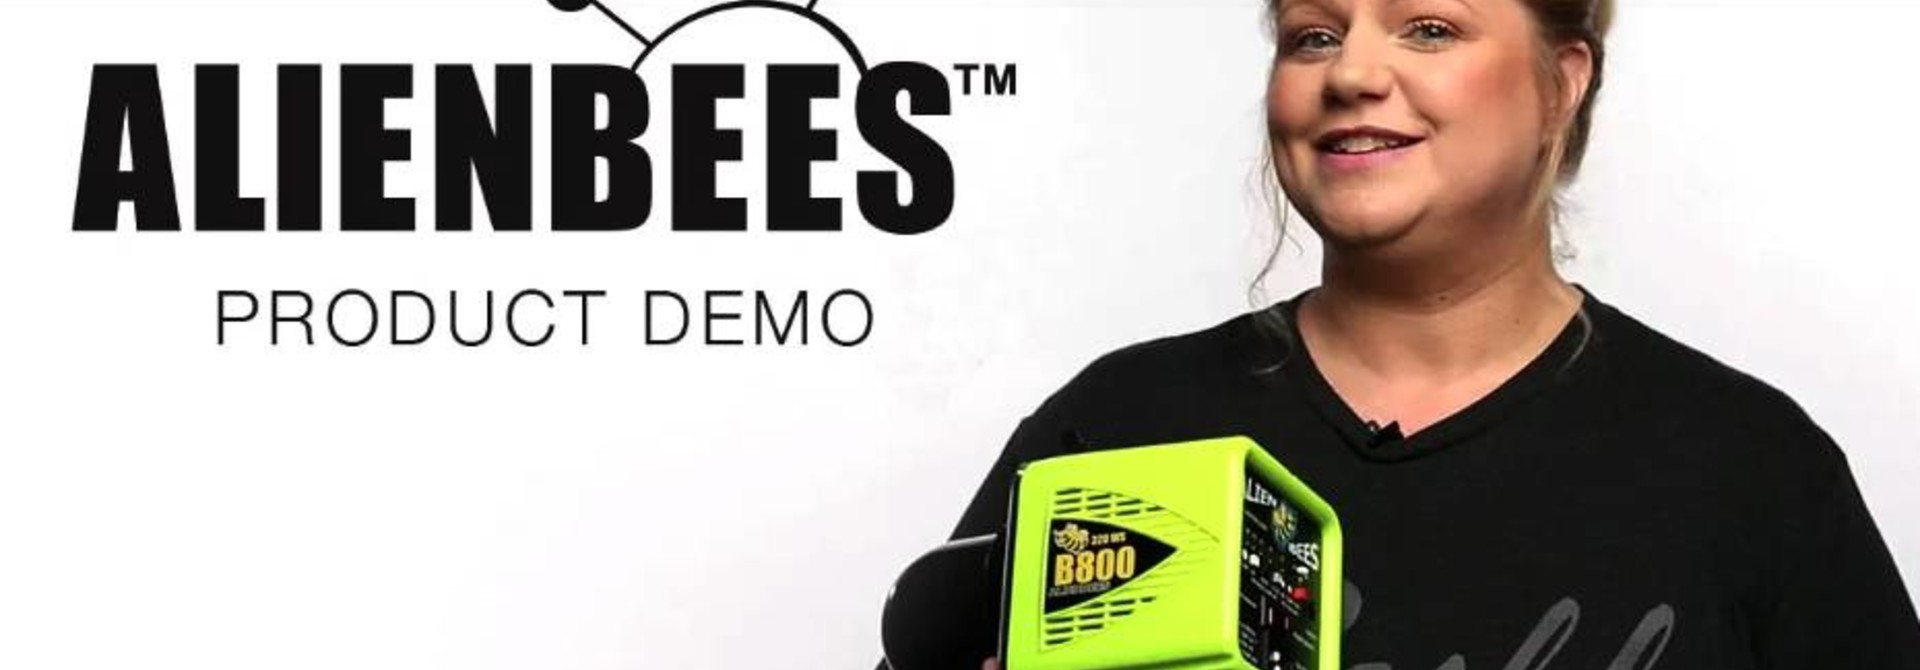 AlienBees Product Demo